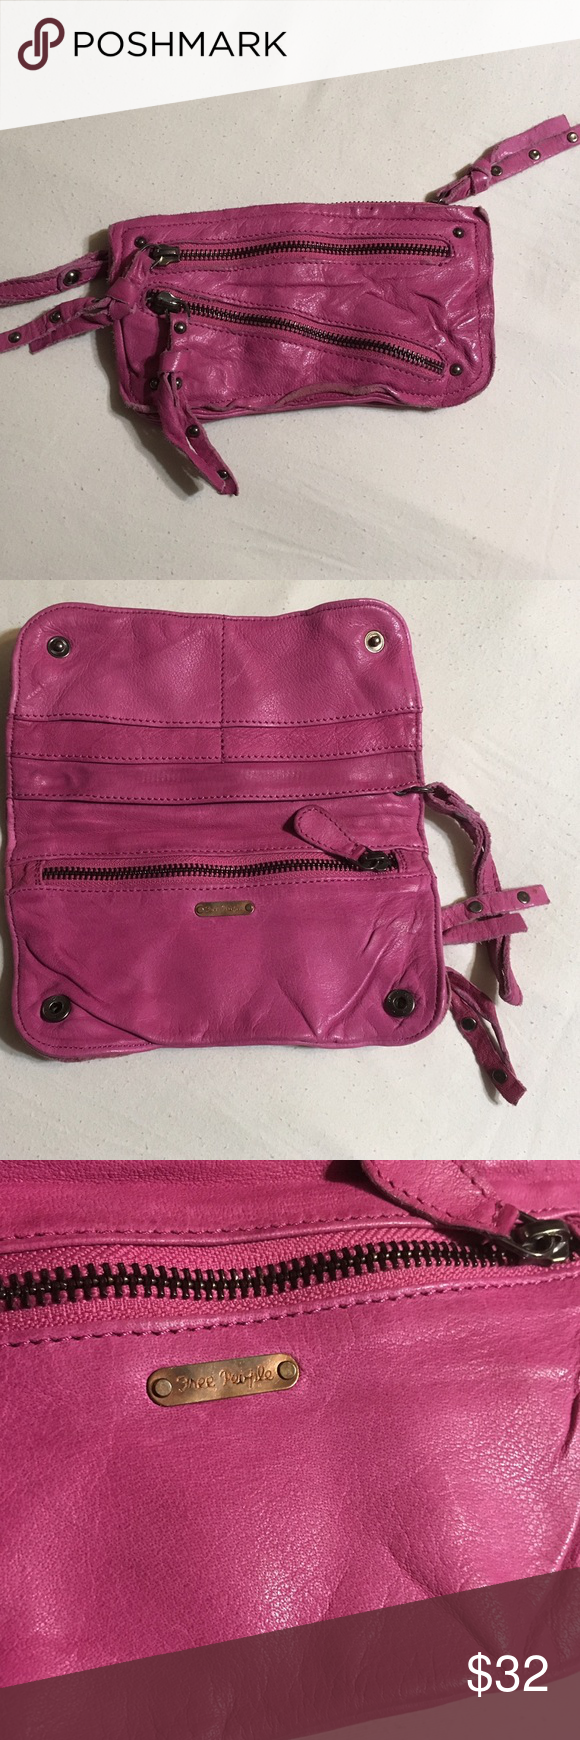 Free People Distressed Leather Wristlet Free People distressed leather wristlet / wallet with 3 exterior zip pockets, 6 interior pockets, soft pink leather with silver studs and fold over design. Color Pink. Material Leather. Measurements: 7.5 wide x 4 tall x 5 wrist strap. Free People Bags Clutches & Wristlets